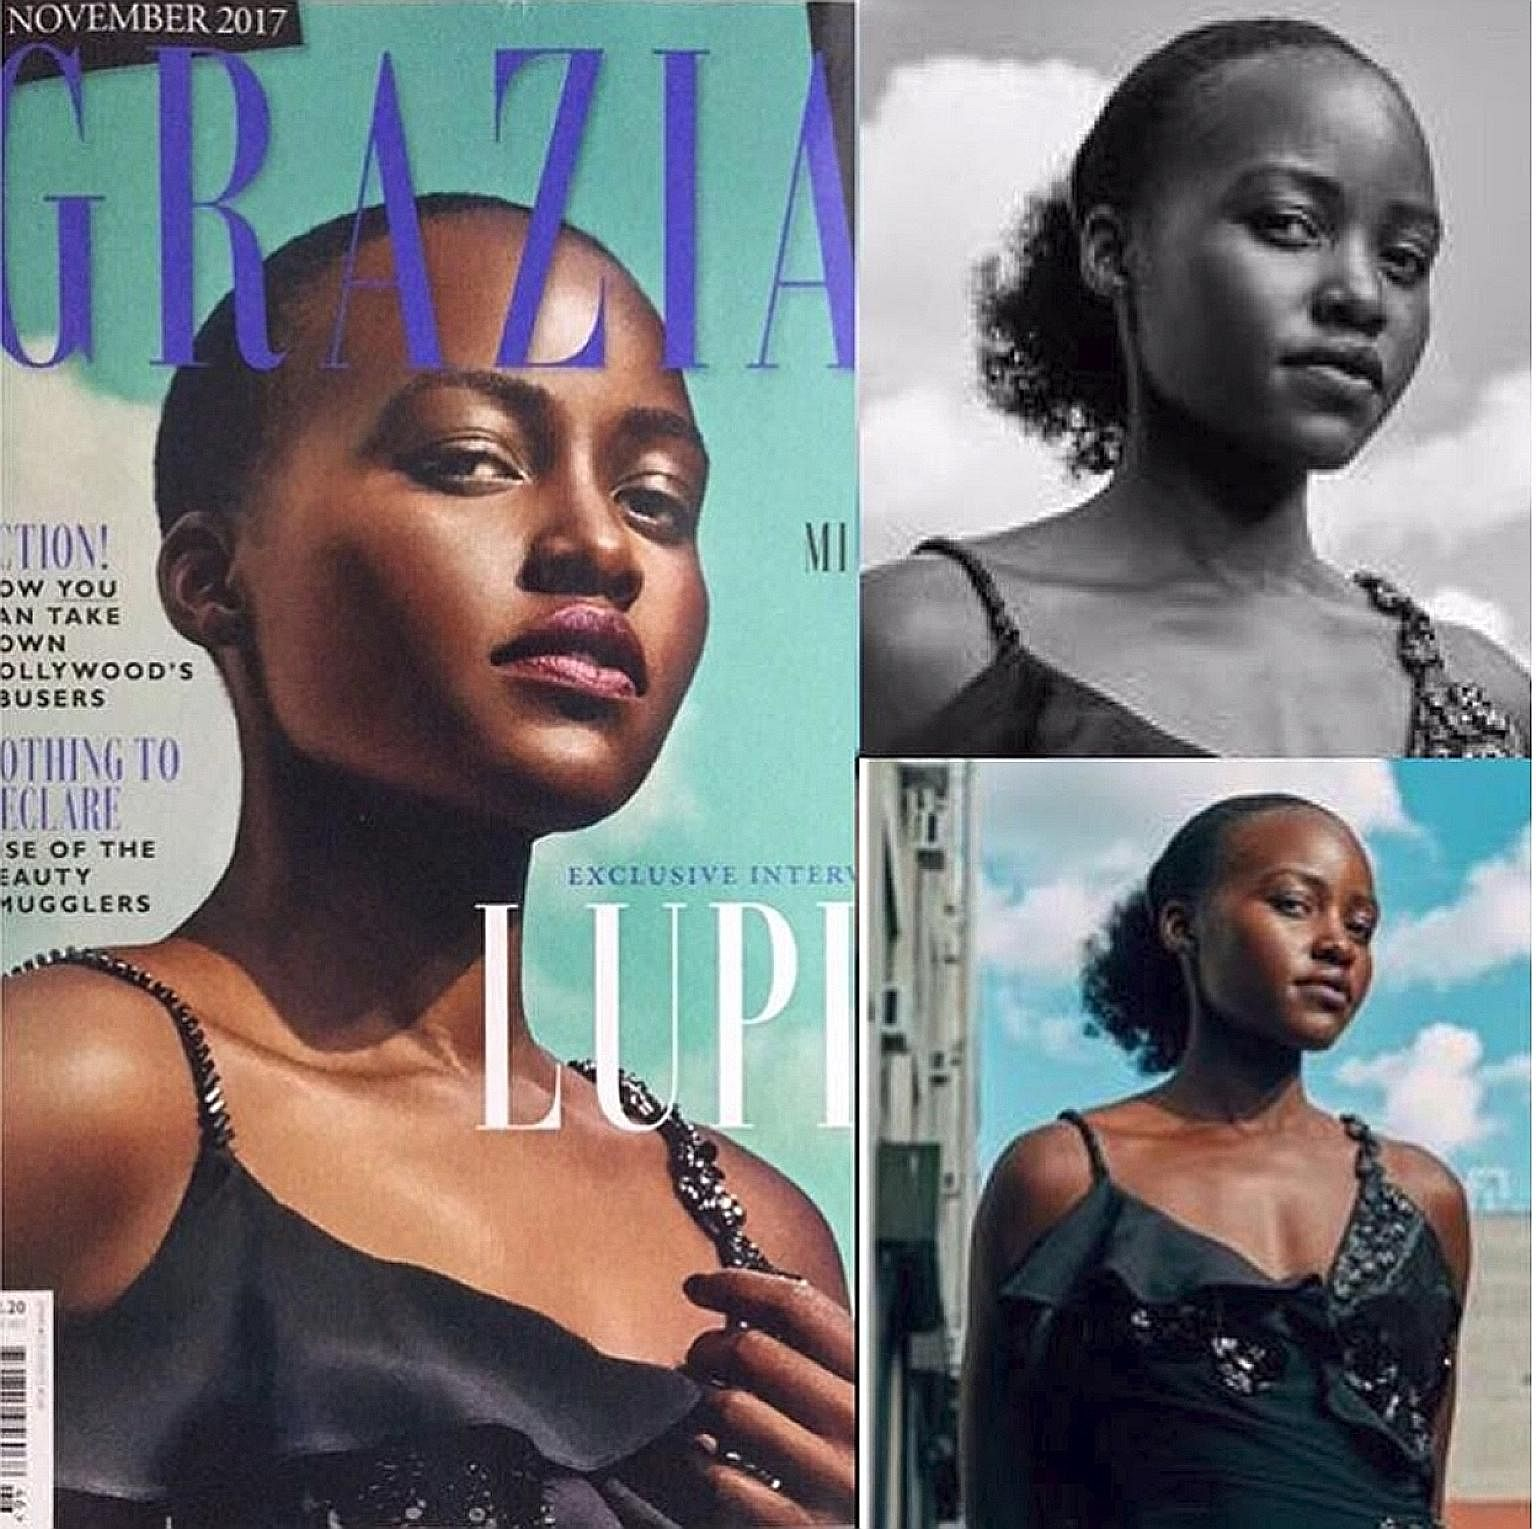 Actress Lupita Nyong'o's mass of curly black hair, held in a thick ponytail at the back of her neck in the original photograph, was gone in an altered image on the cover of the magazine Grazia UK.